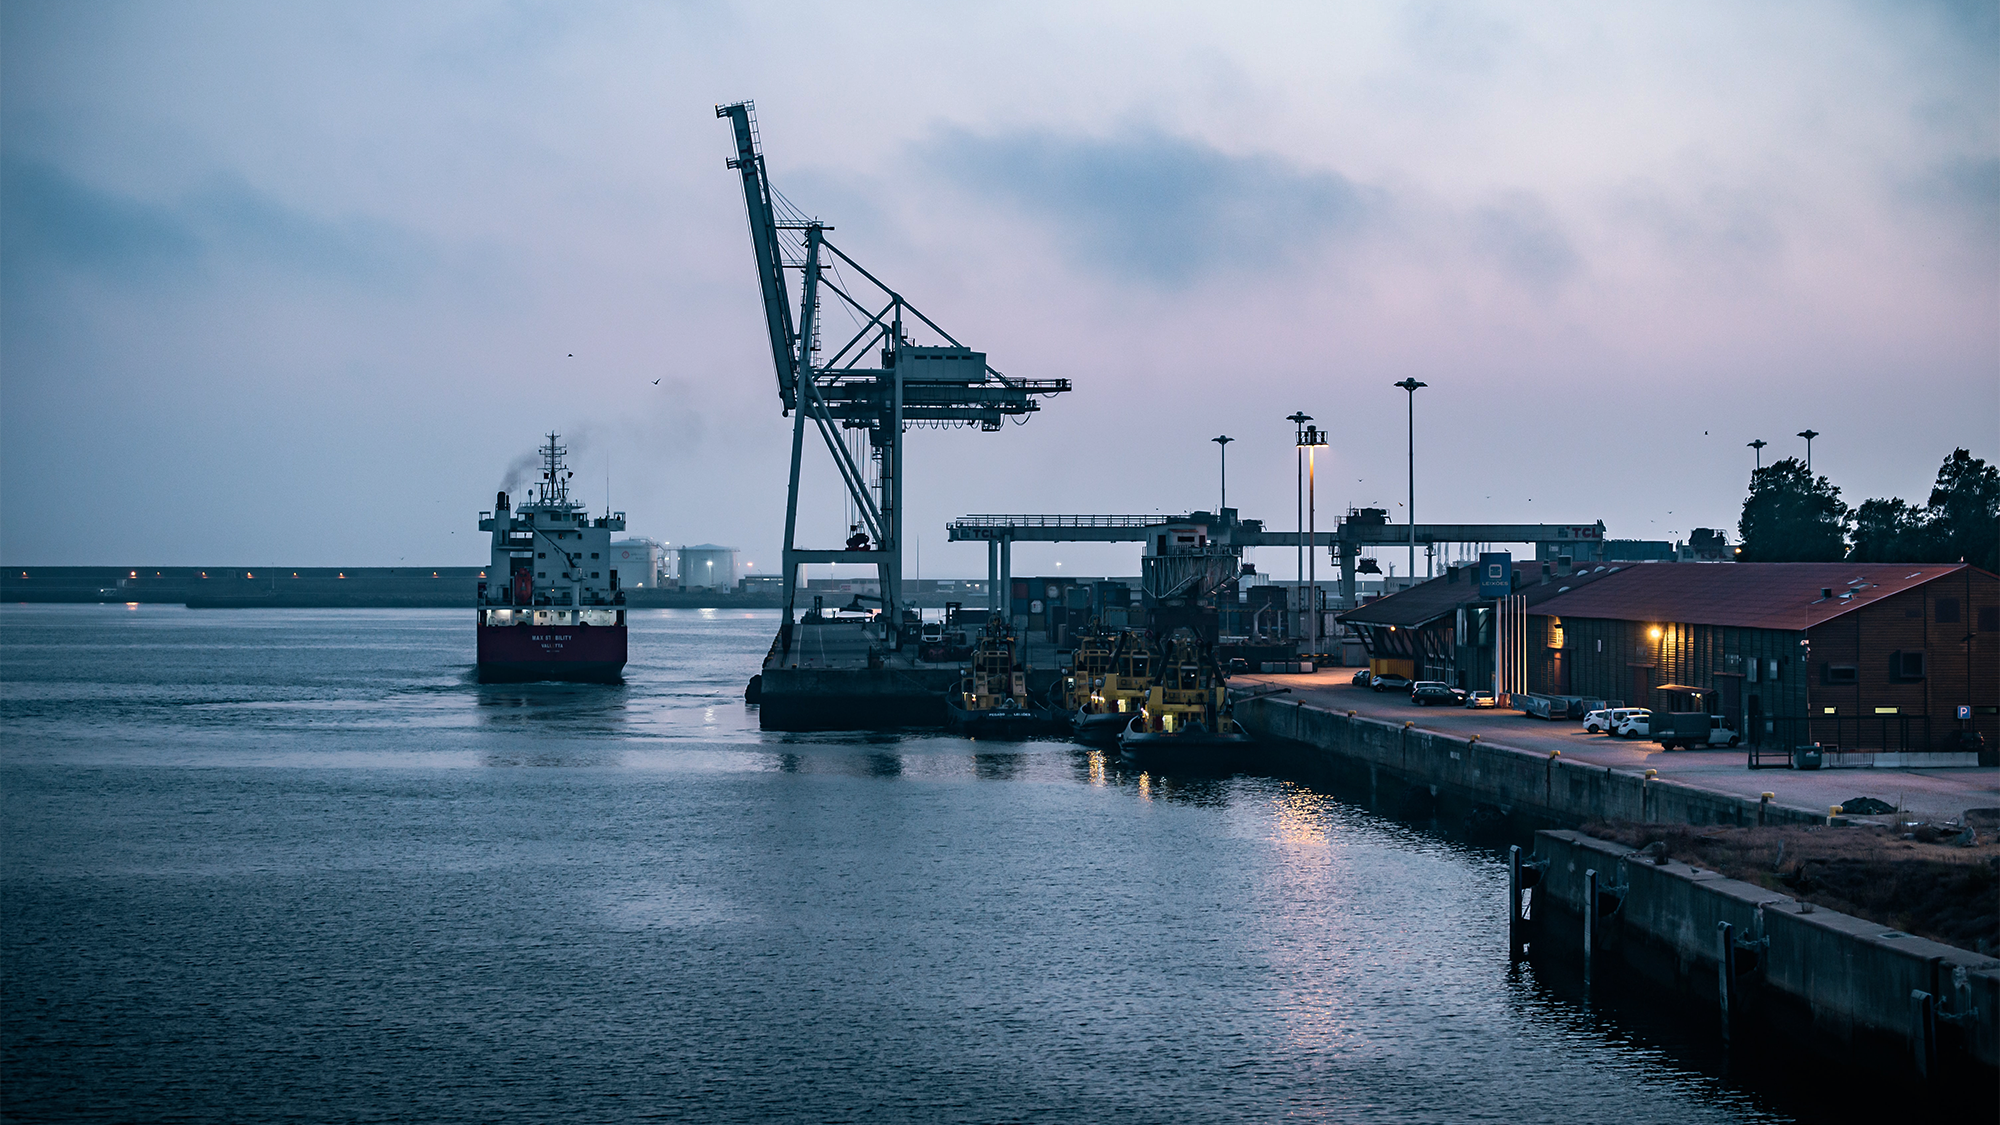 Are Traders Shipping Cargo On Larger Vessels Given the Dry Bulk Cargo Ocean Freight Rates?